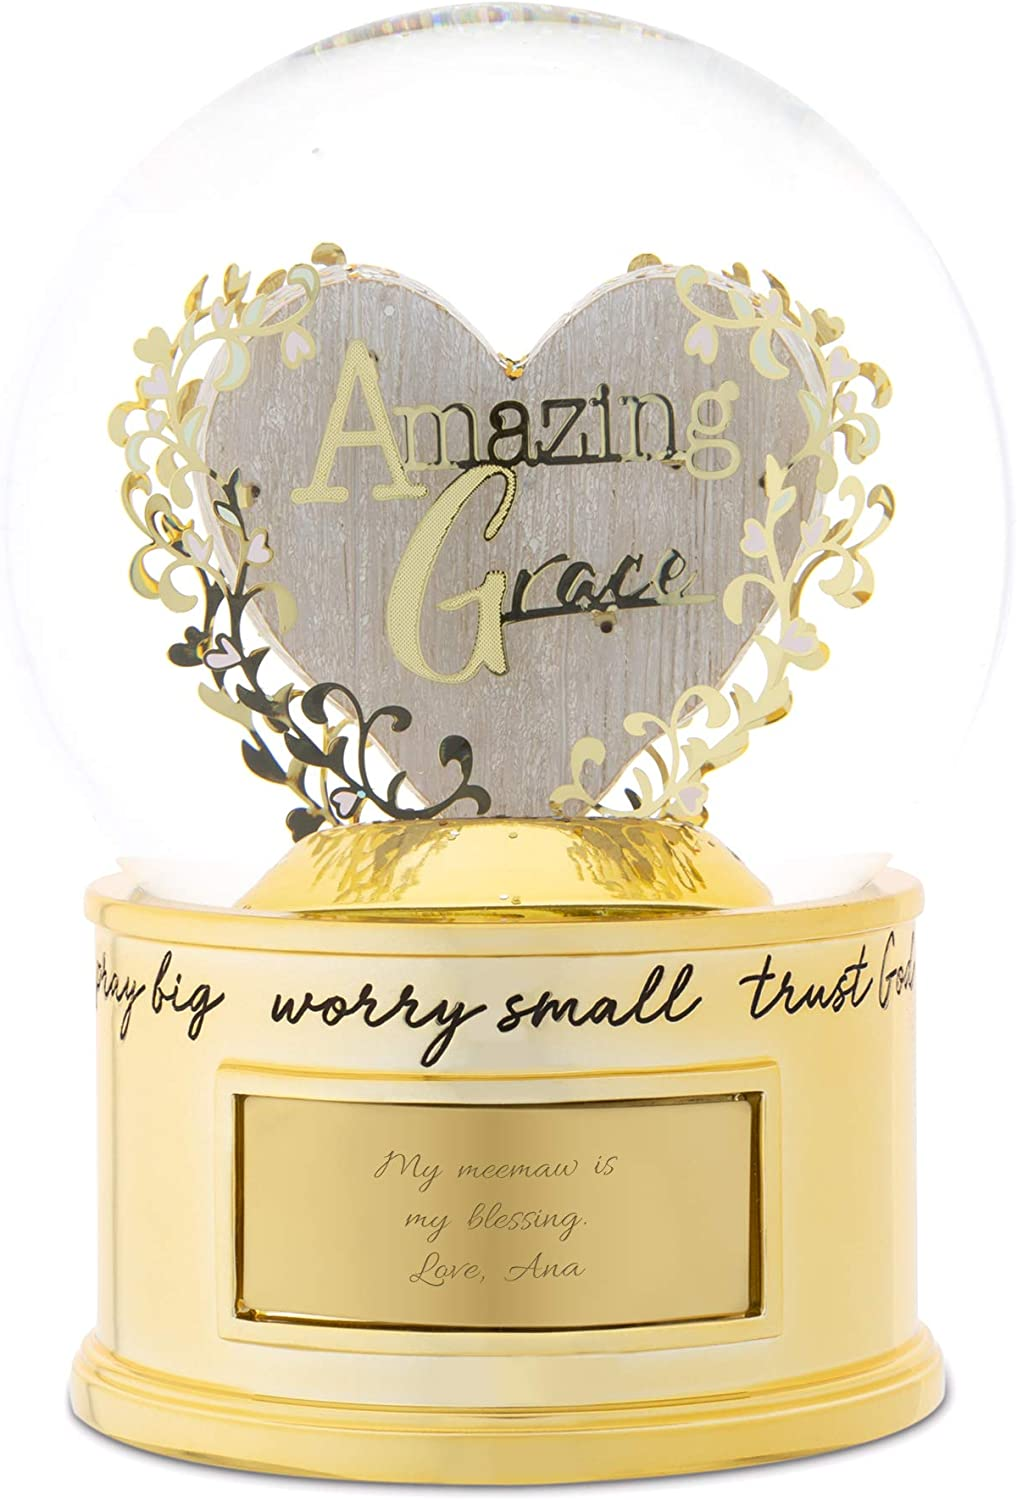 THINGS REMEMBERED Personalized Amazing Grace Snow Globe Fresno Mall Free shipping anywhere in the nation Musical